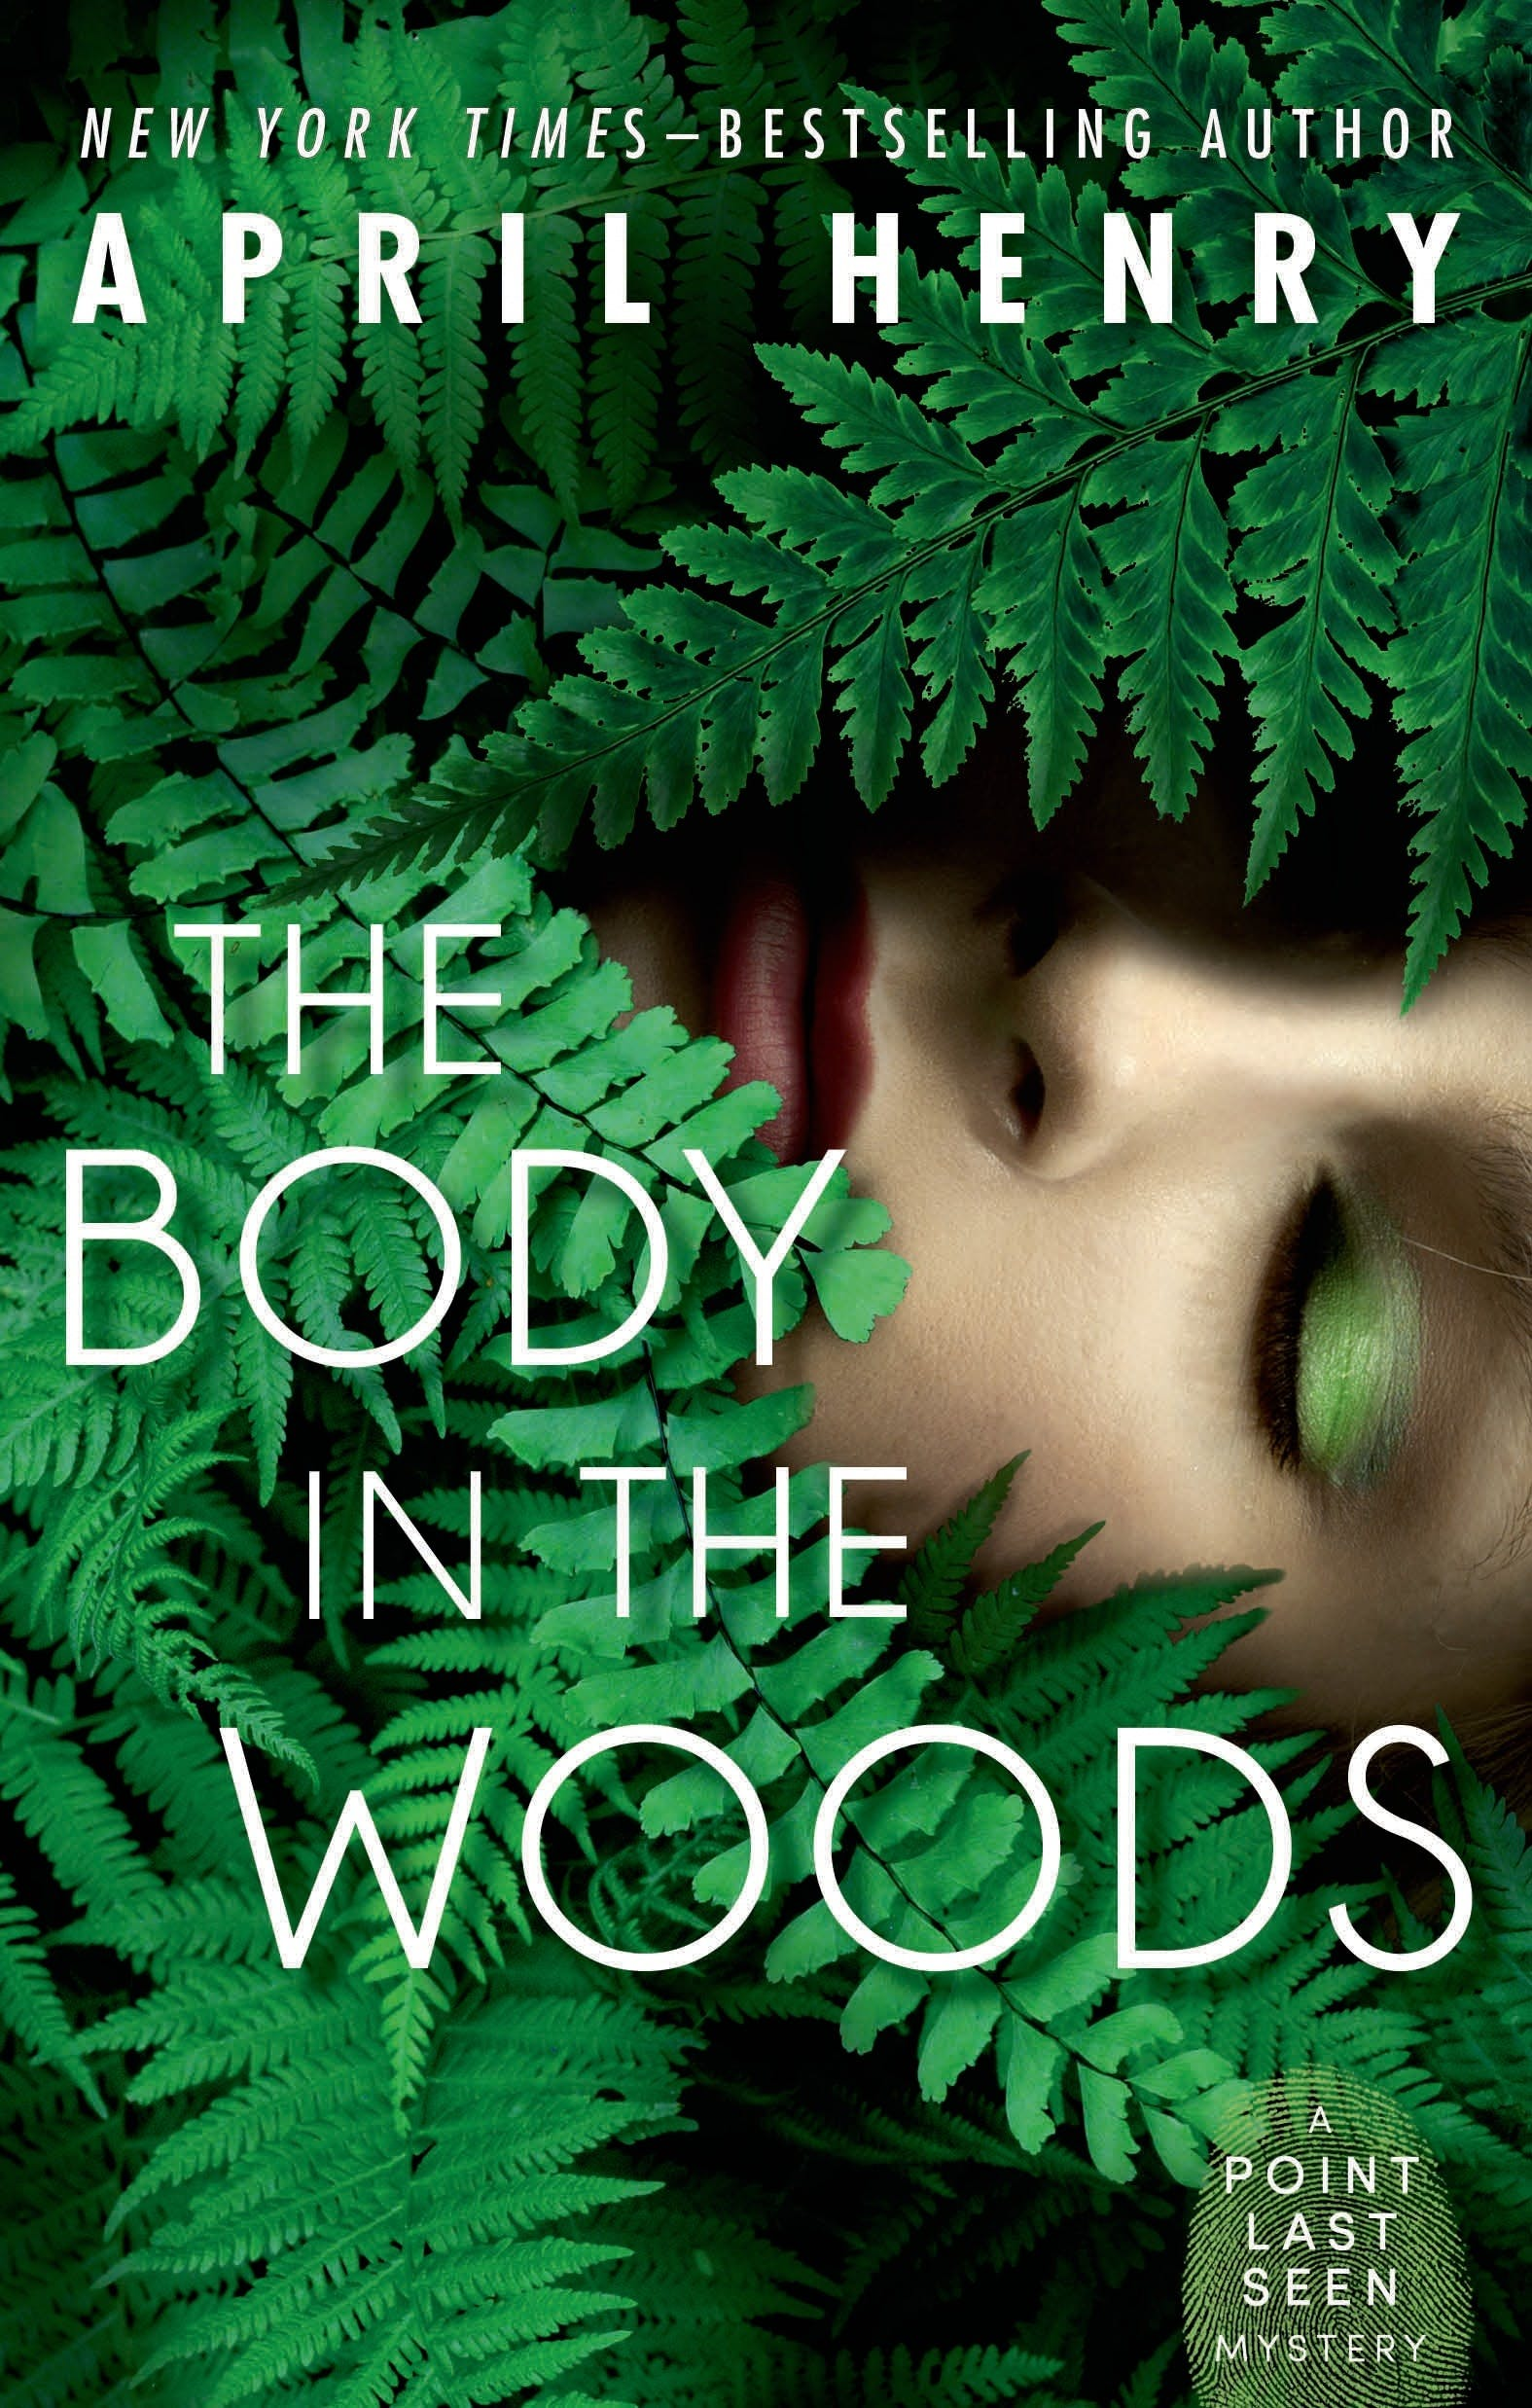 Image of The Body in the Woods